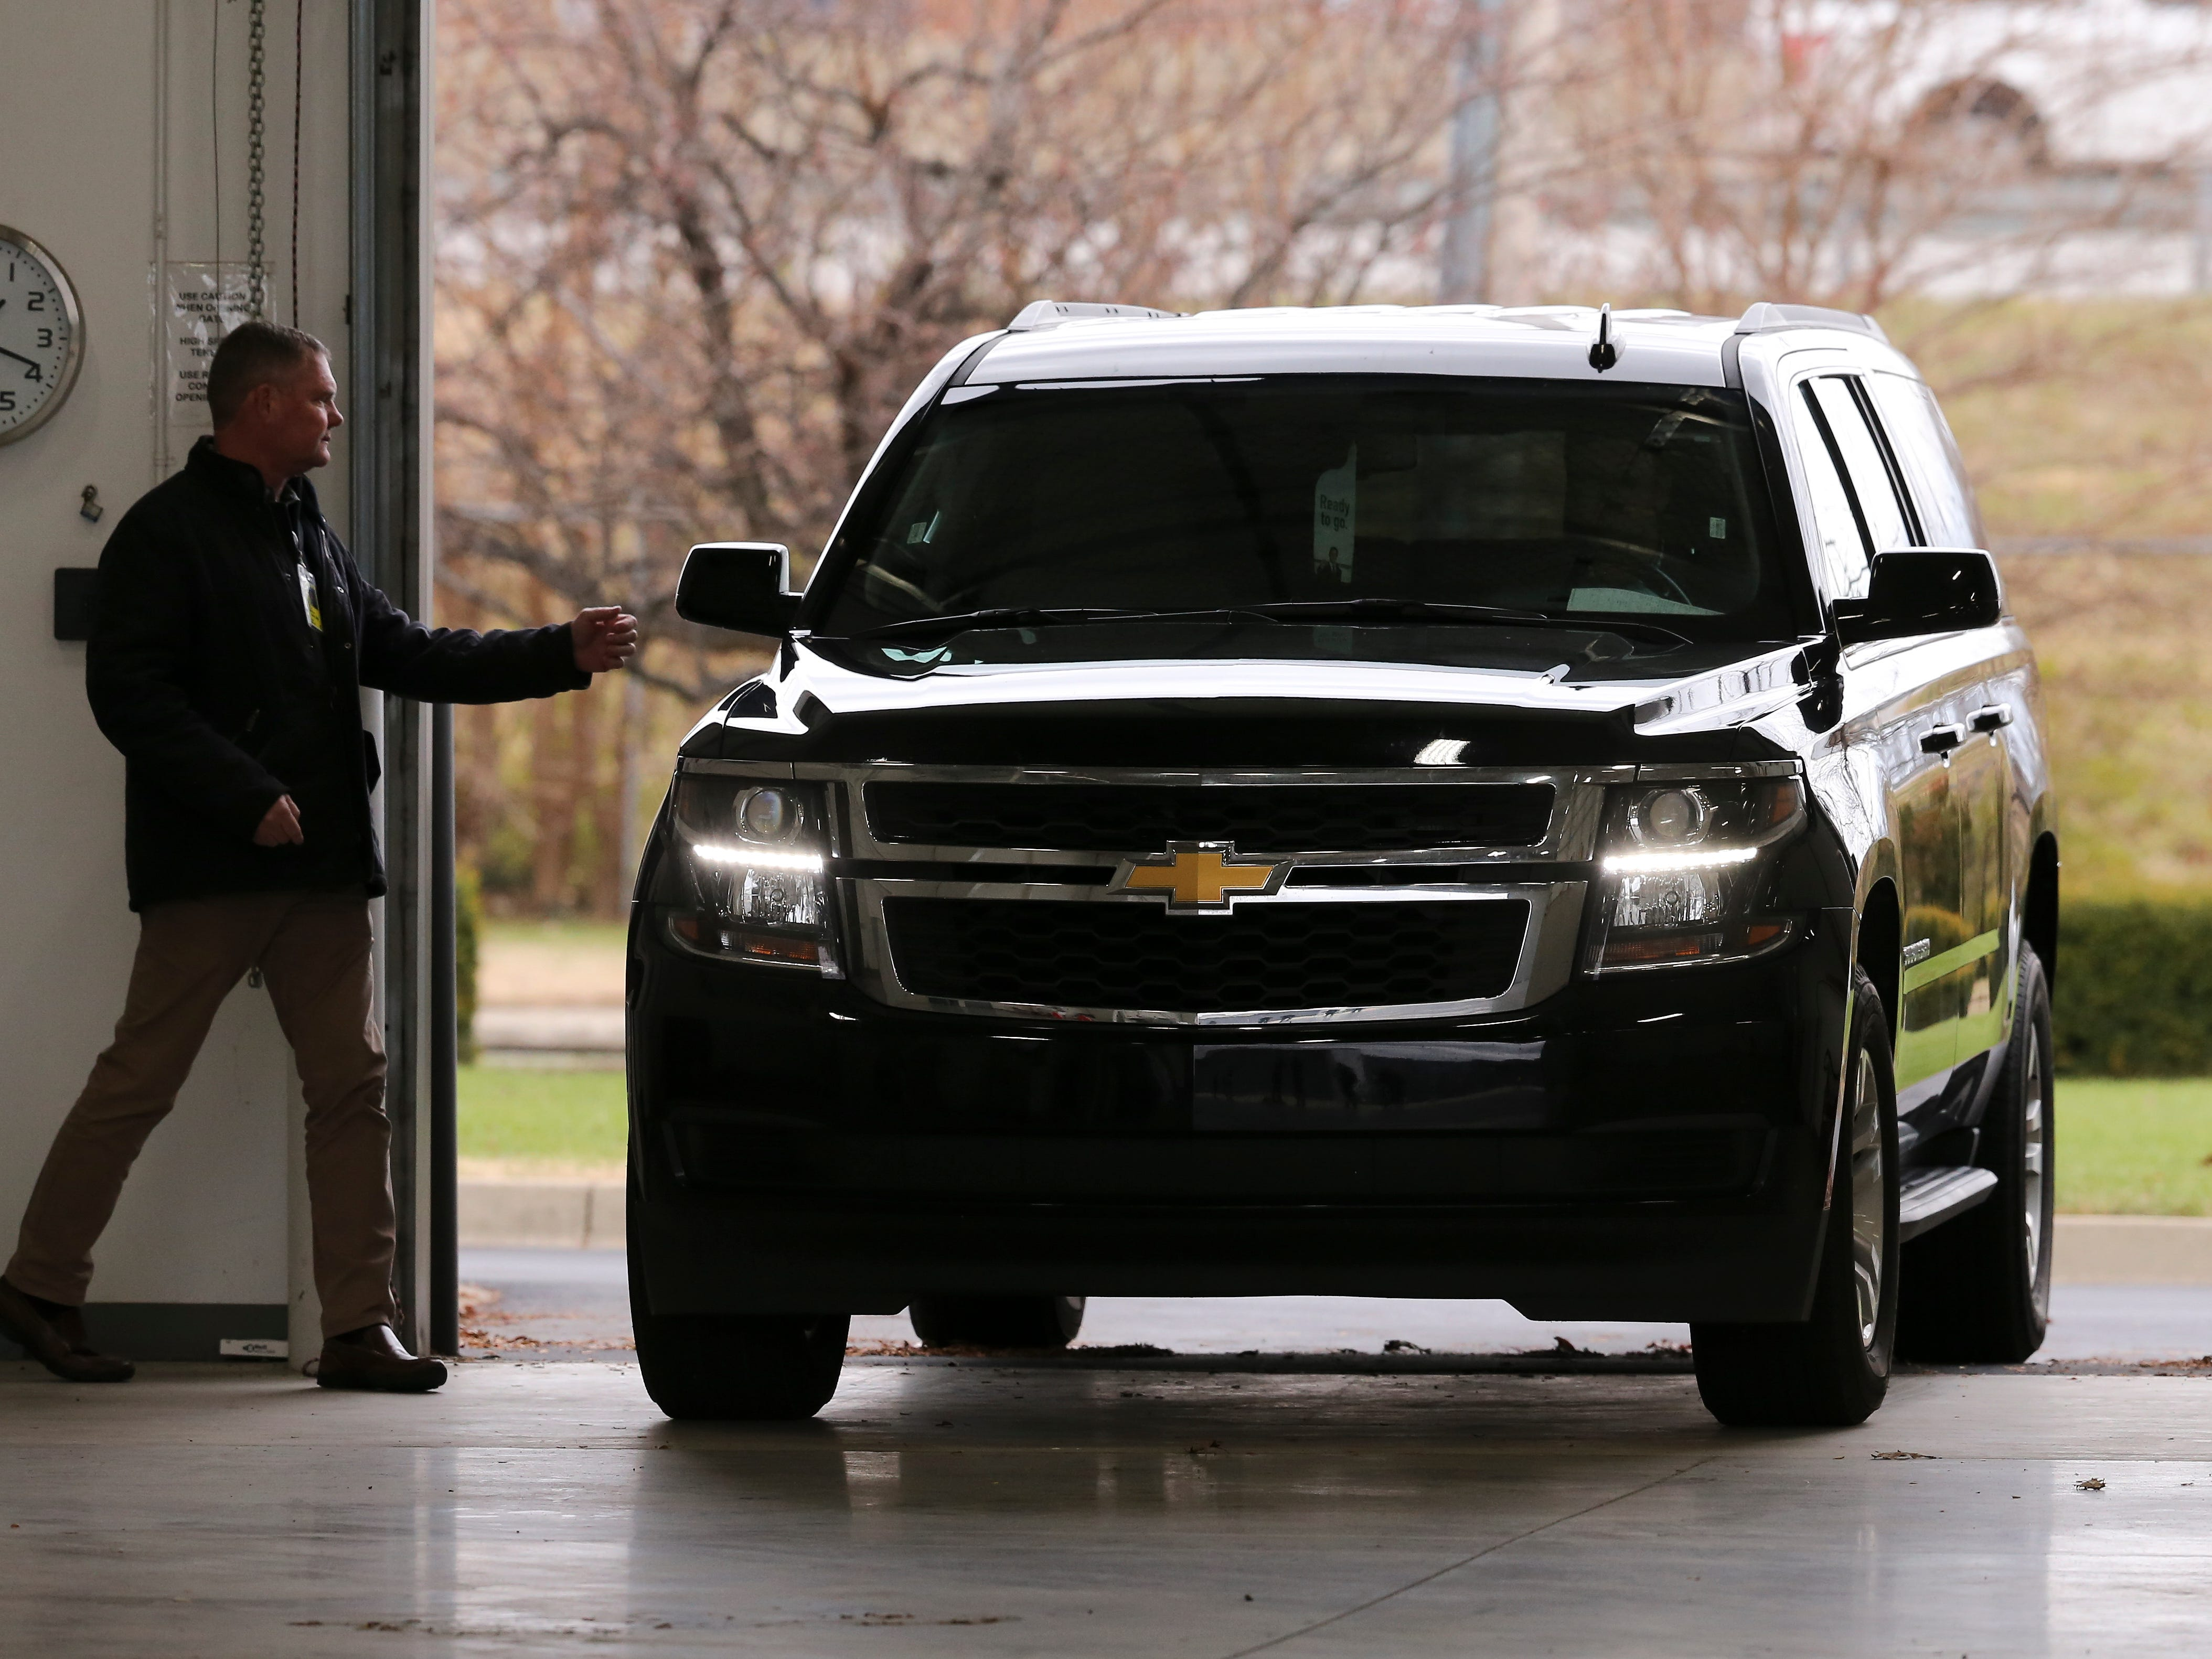 A technician opens a garage door to let an SUV into a hangar to pick up Appalachian State head football coach Scott Satterfield following his arrival in Louisville.  Satterfield expects to be named the new head football coach at U of L.  Dec. 4, 2018